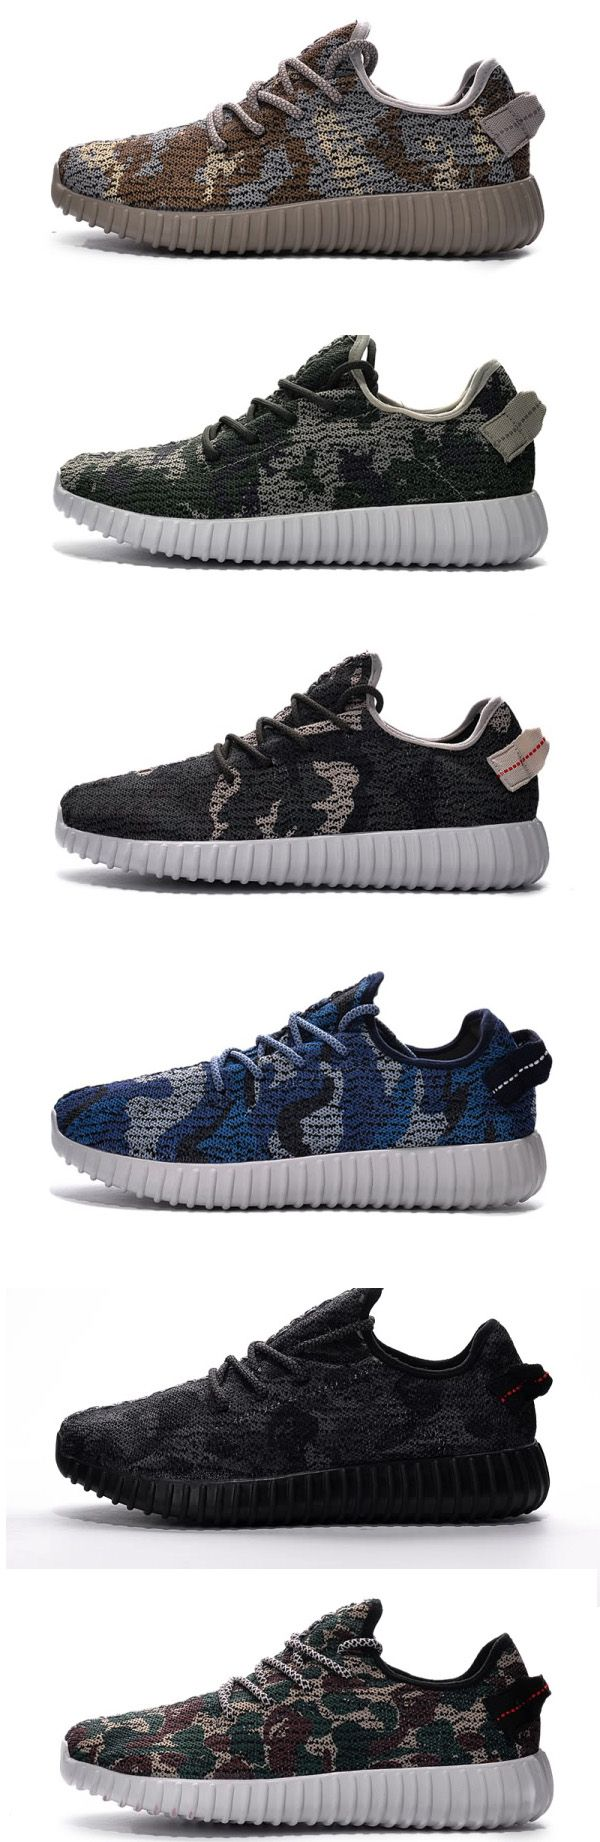 Cheap Adidas Yeezy 350 Camouflage Men Boost Free Shipping only price $43